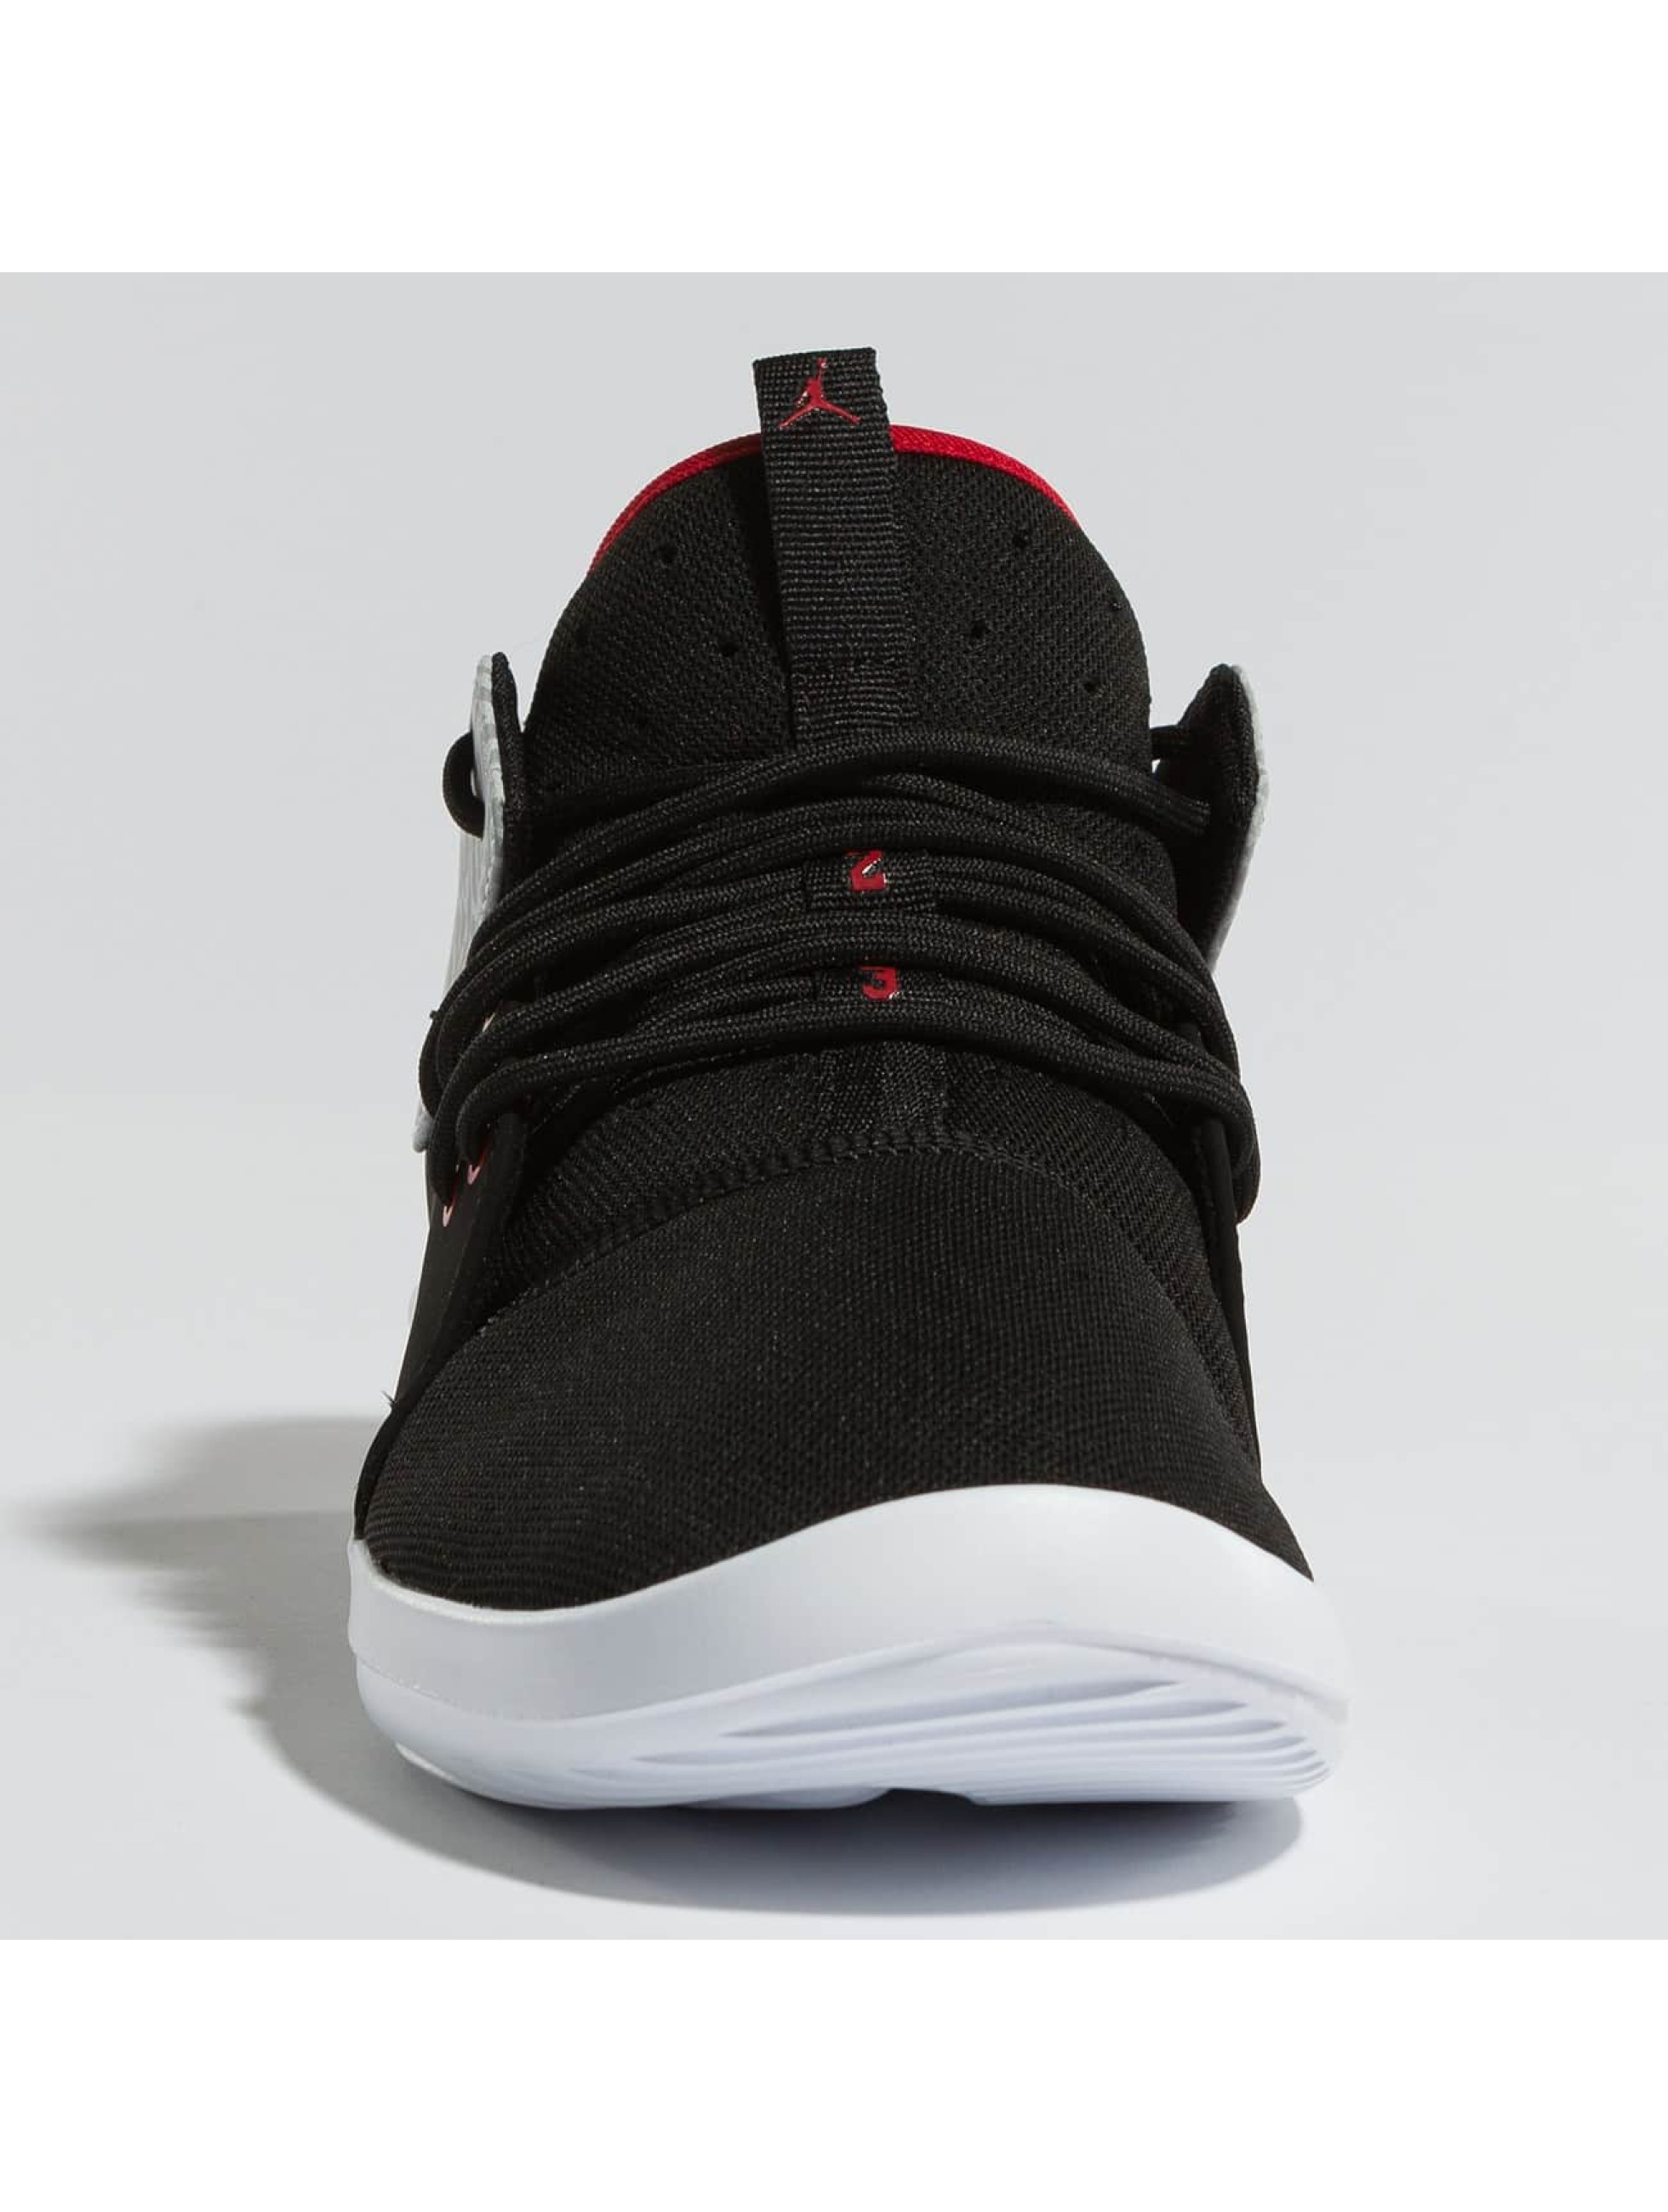 Jordan Sneakers First Class black